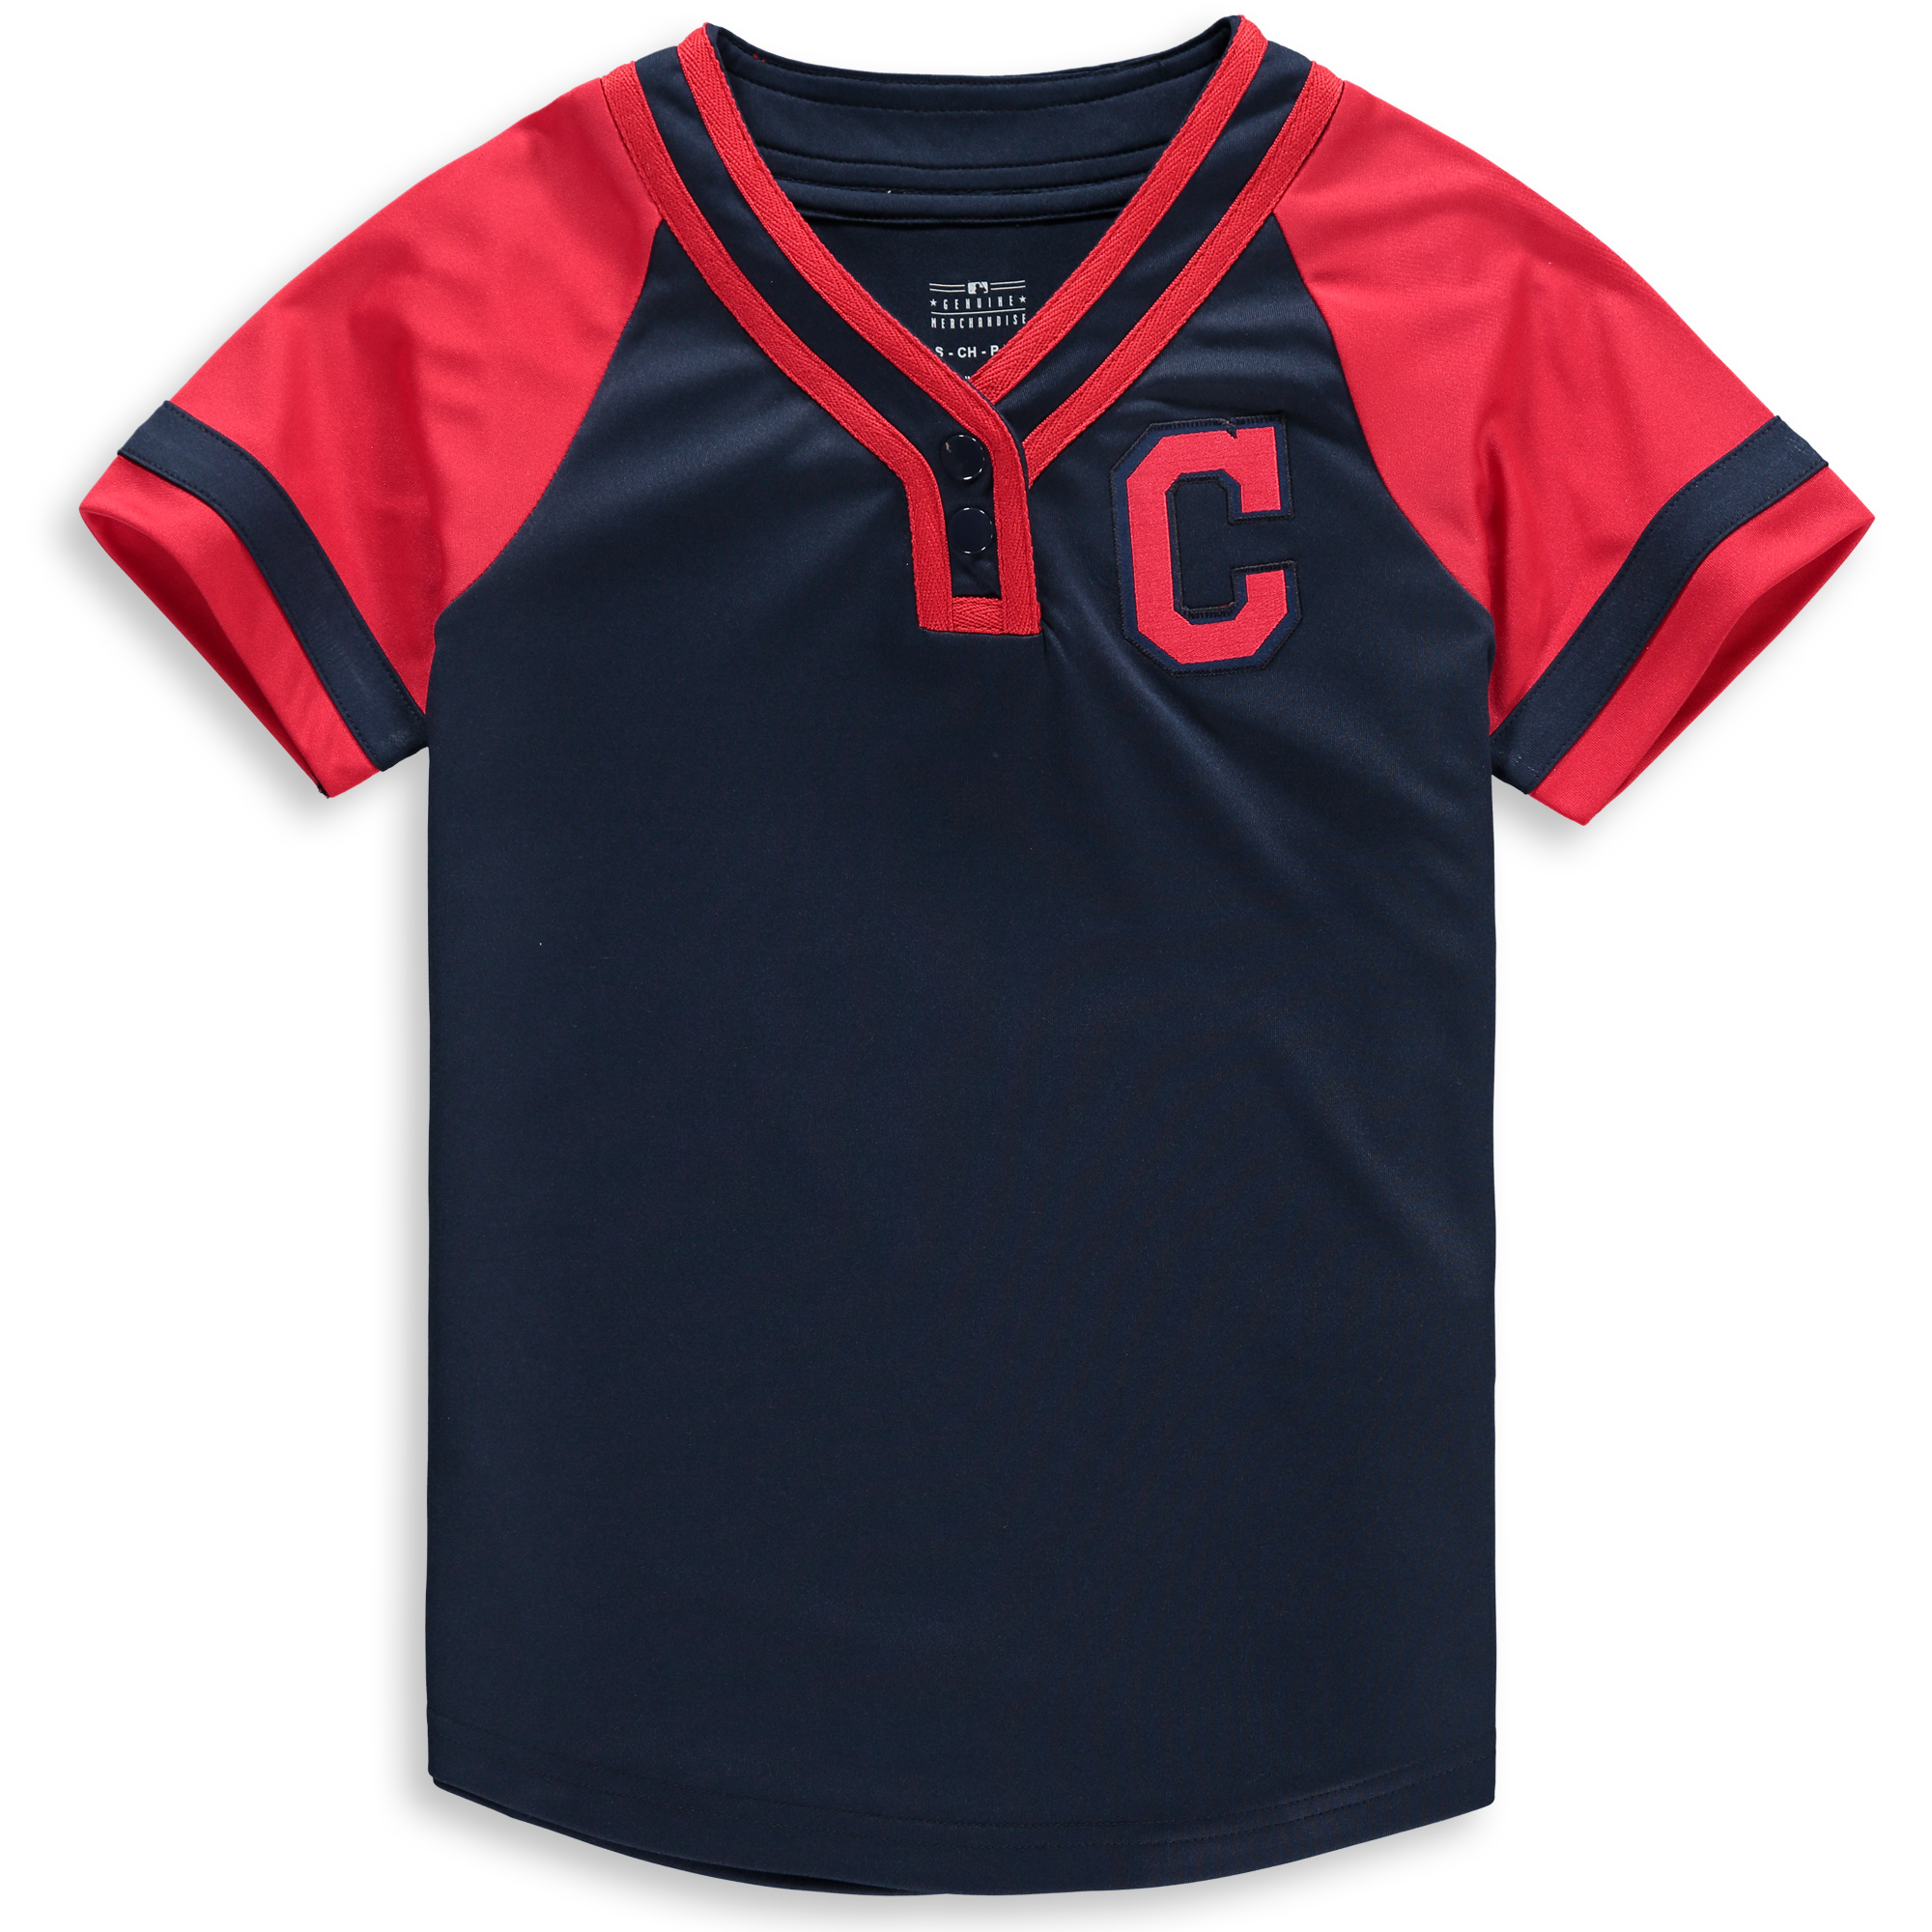 Cleveland Indians Youth Dedicated Raglan T-Shirt - Navy/Red